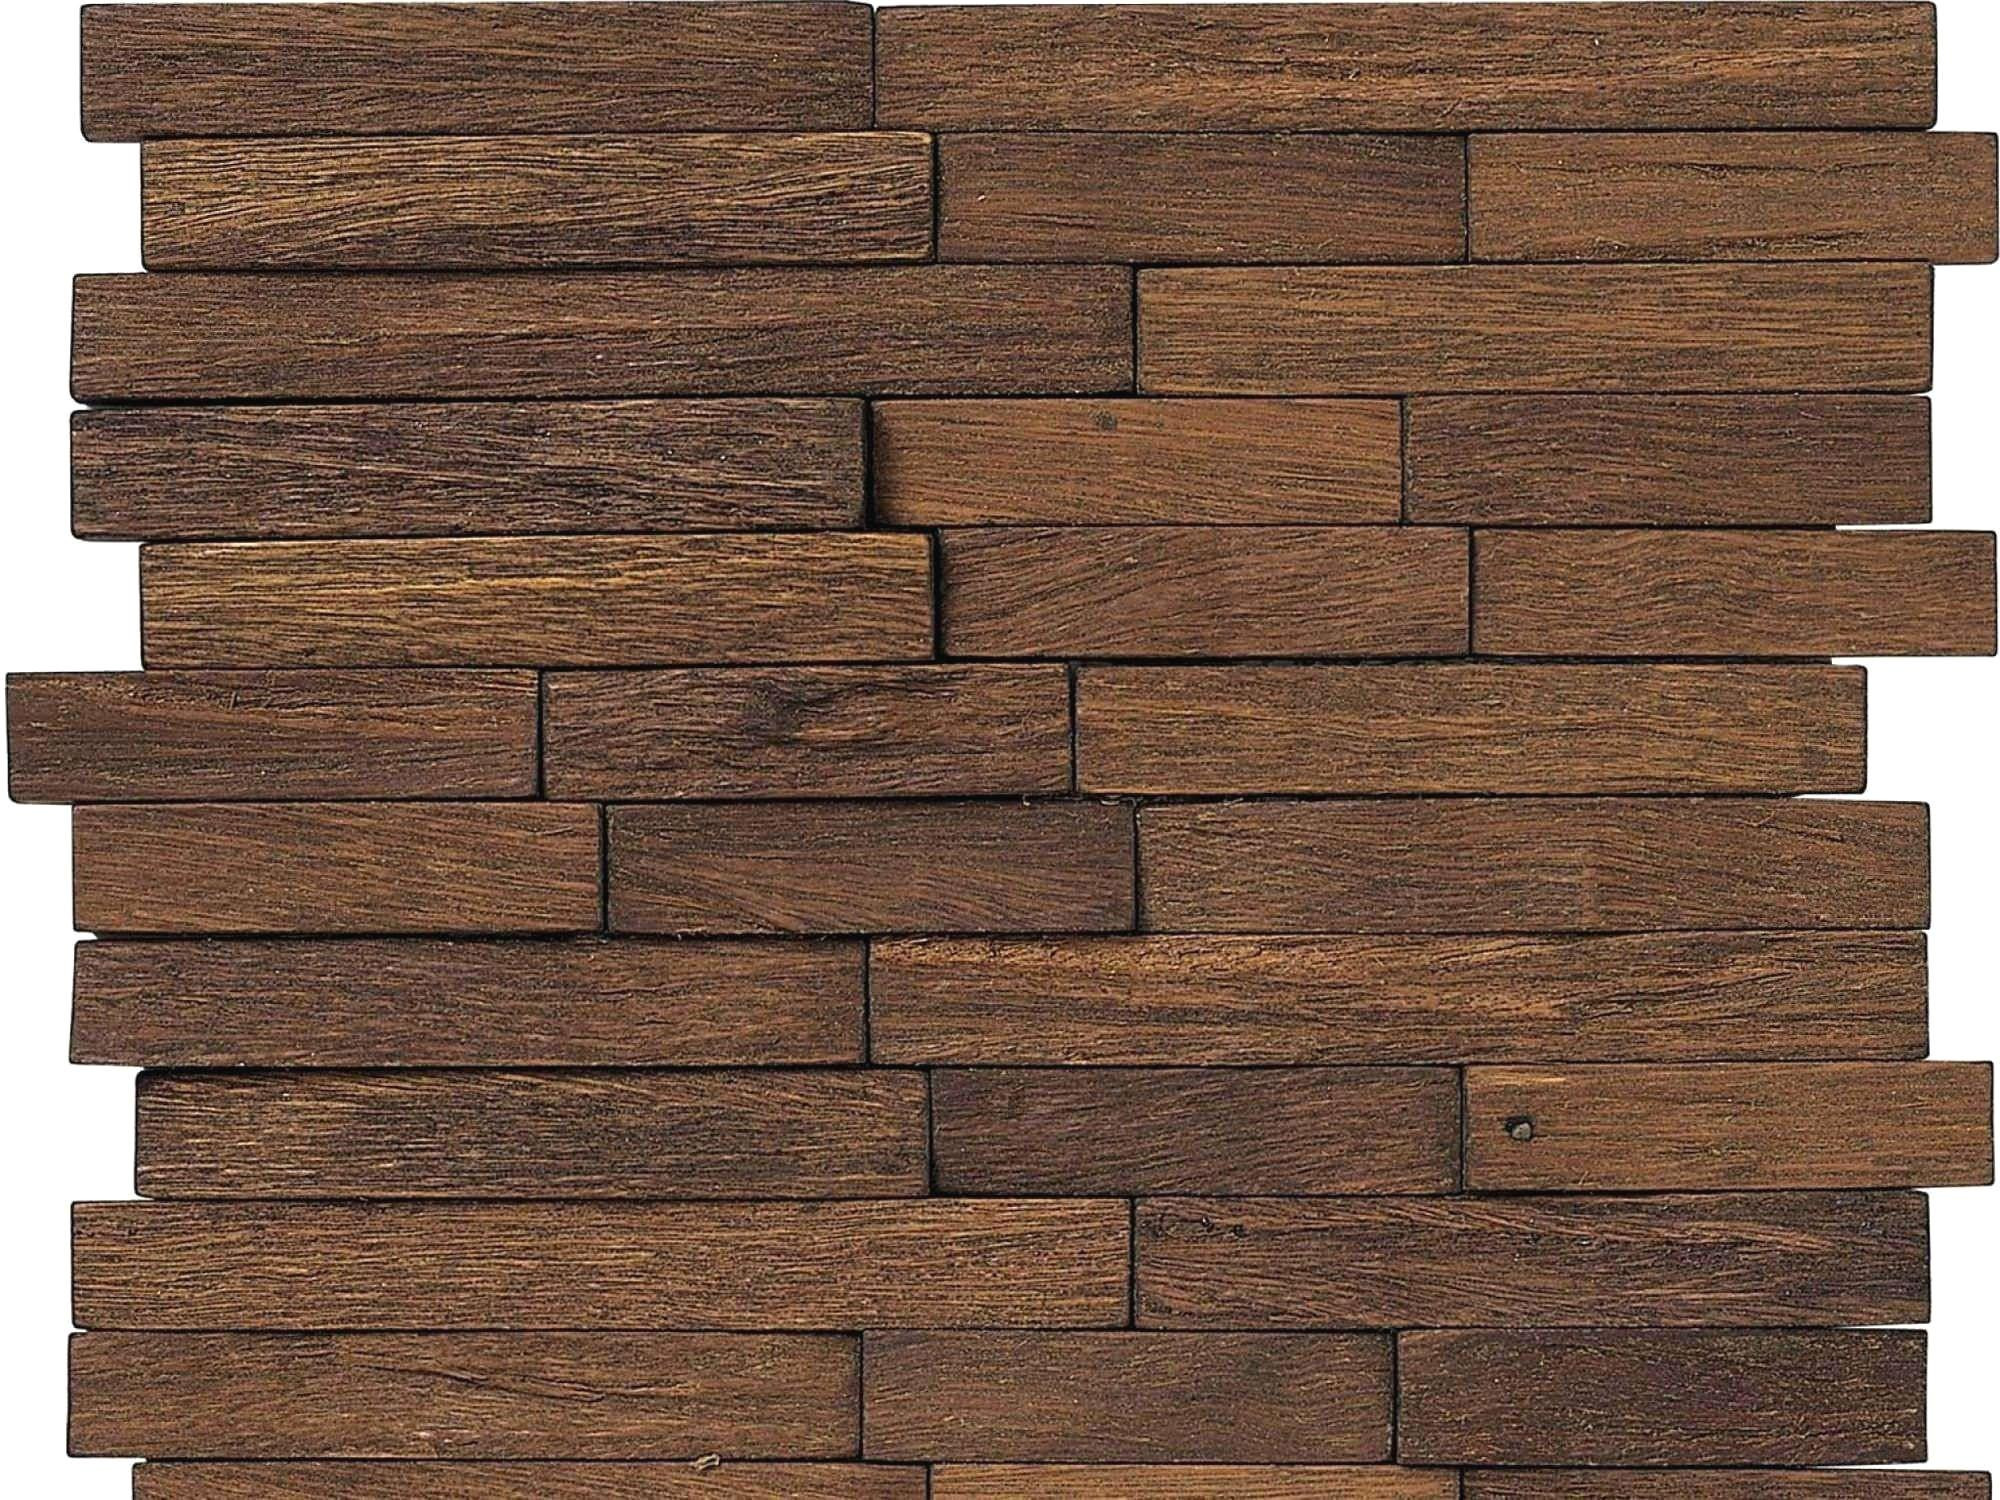 hardwood flooring pictures in homes of 10 diy wood flooring collections economyinnbeebe com regarding diy home design new metal wall art panels fresh 1 kirkland wall decor home design 0d